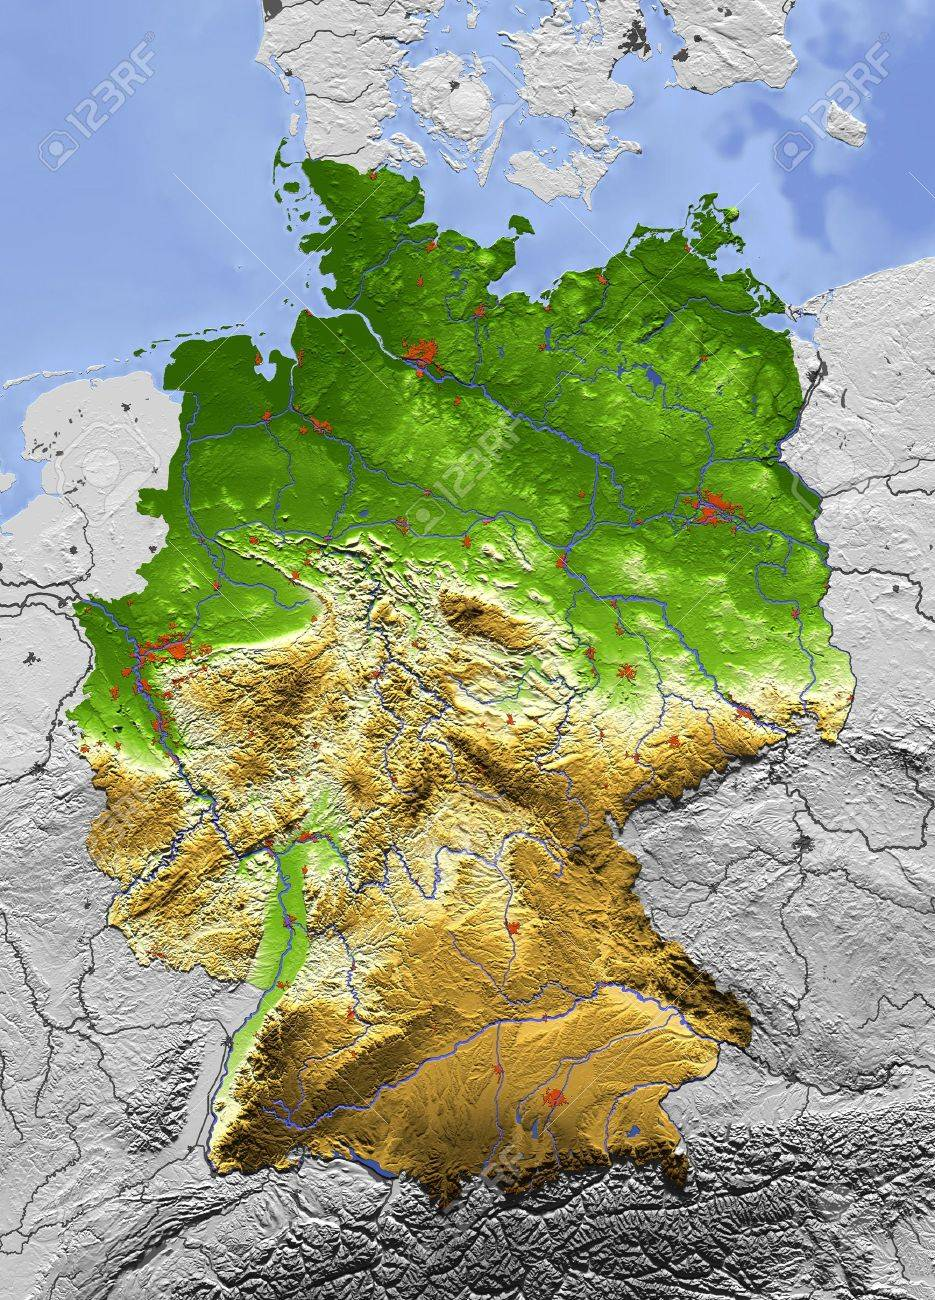 Map Of Germany Showing Major Cities.3d Relief Map Of Germany Seen From Above Shows Major Cities